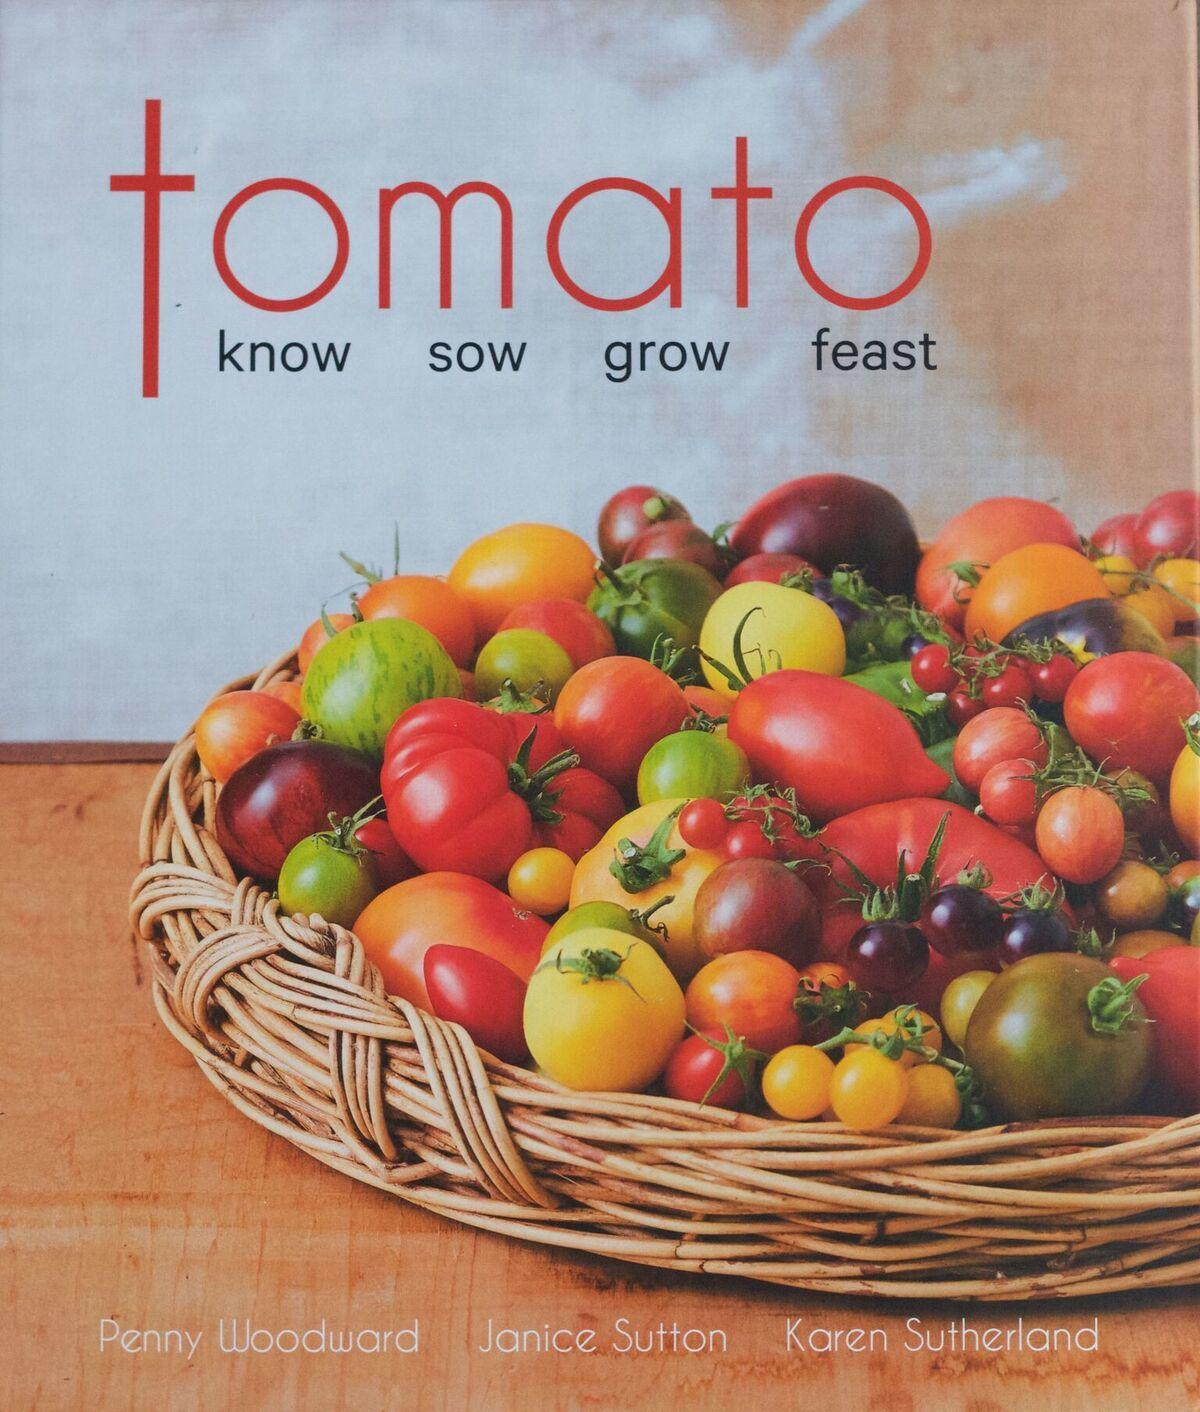 Tomato: Know, Sow, Grow, Feast